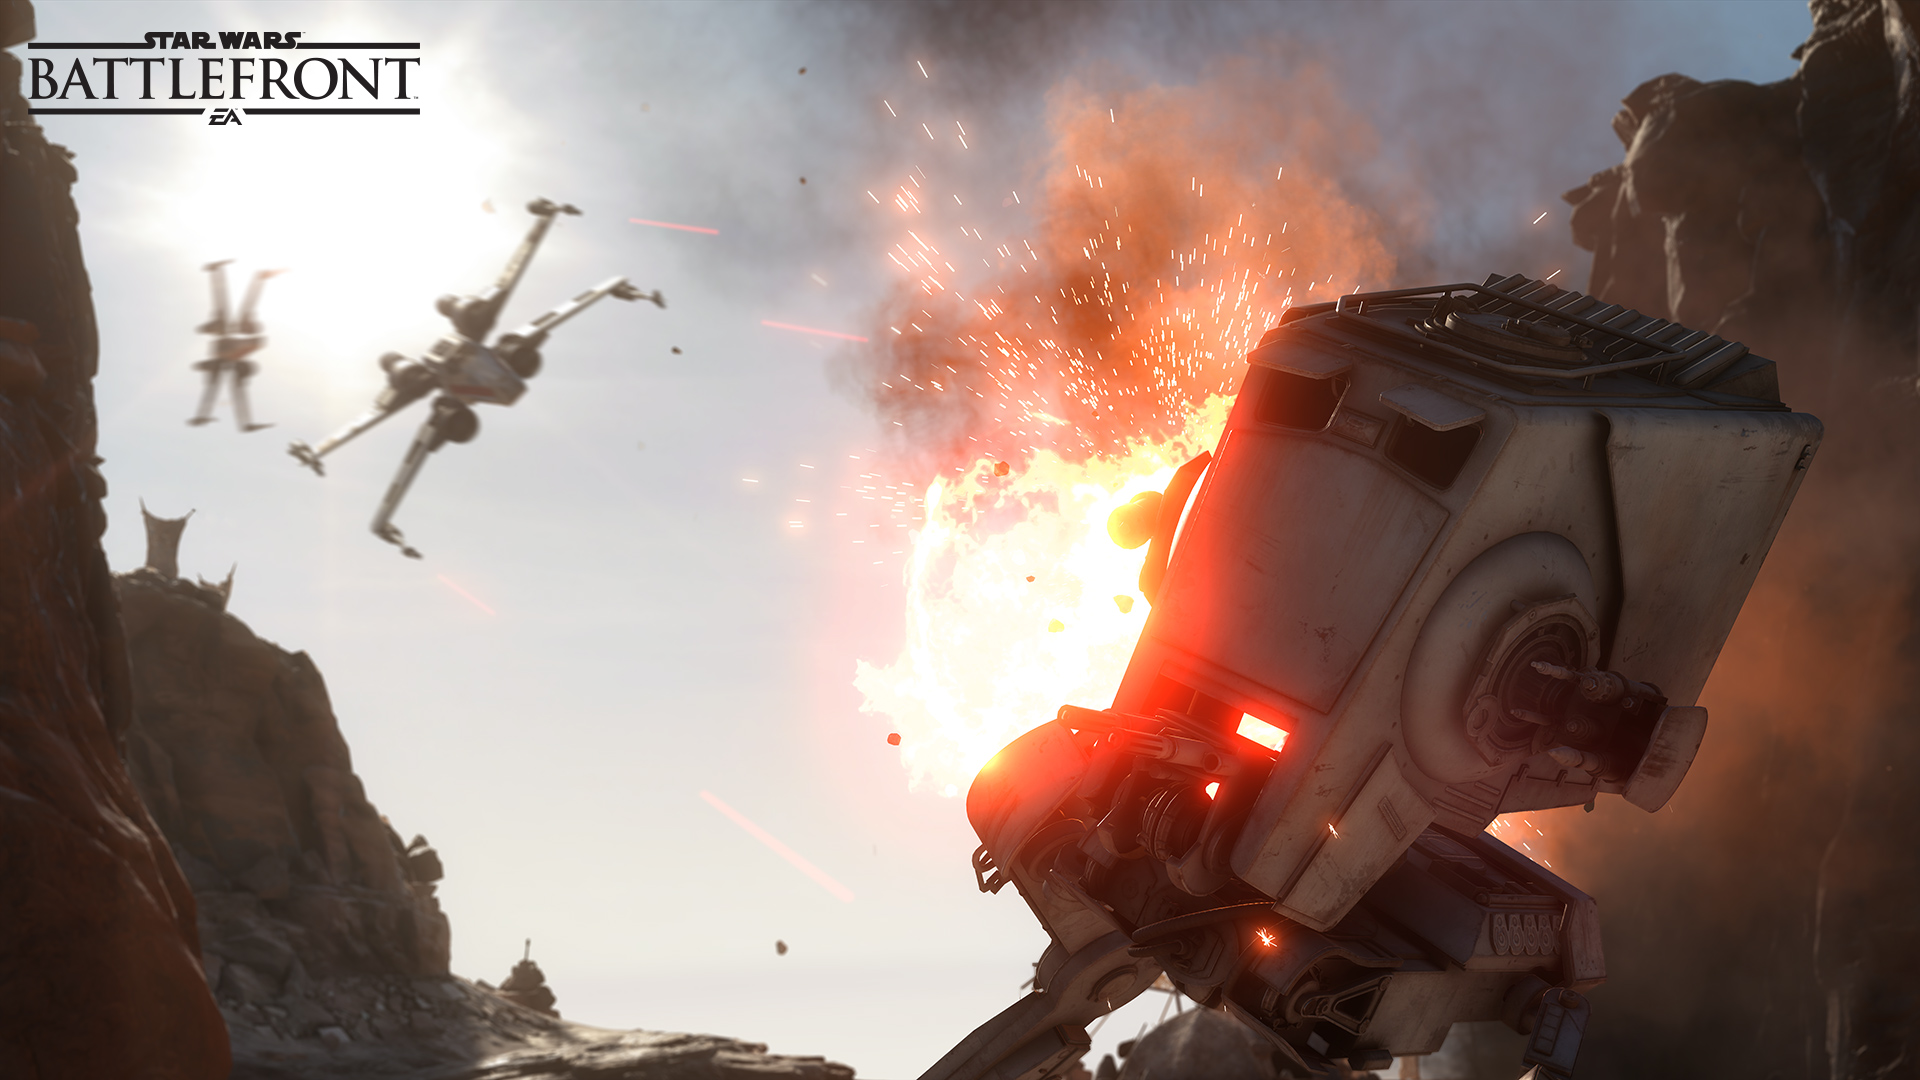 star_wars_battlefront_e3_screen_4__air_to_ground_wm